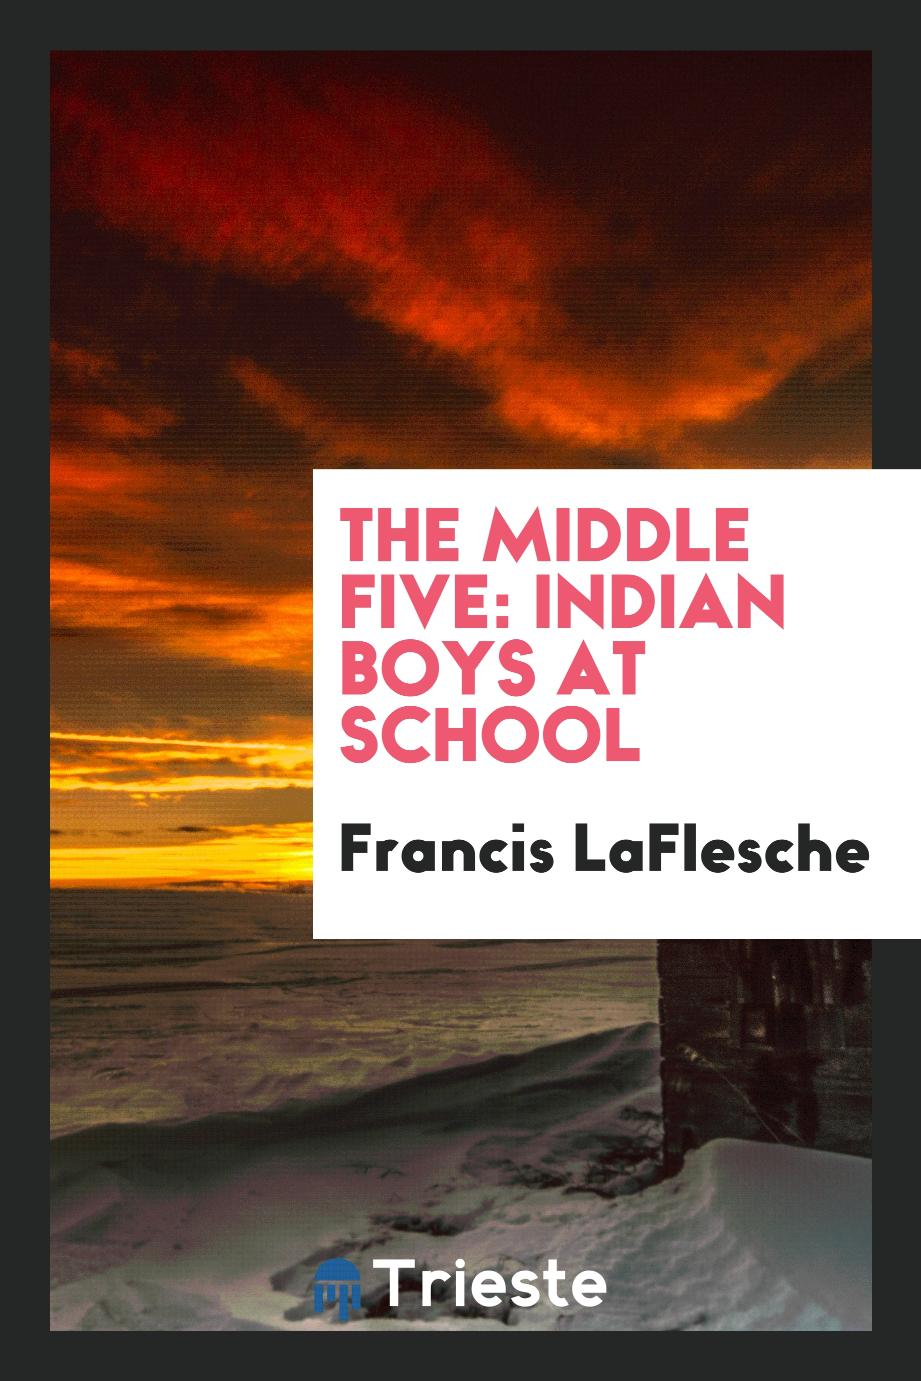 The middle five: Indian boys at school